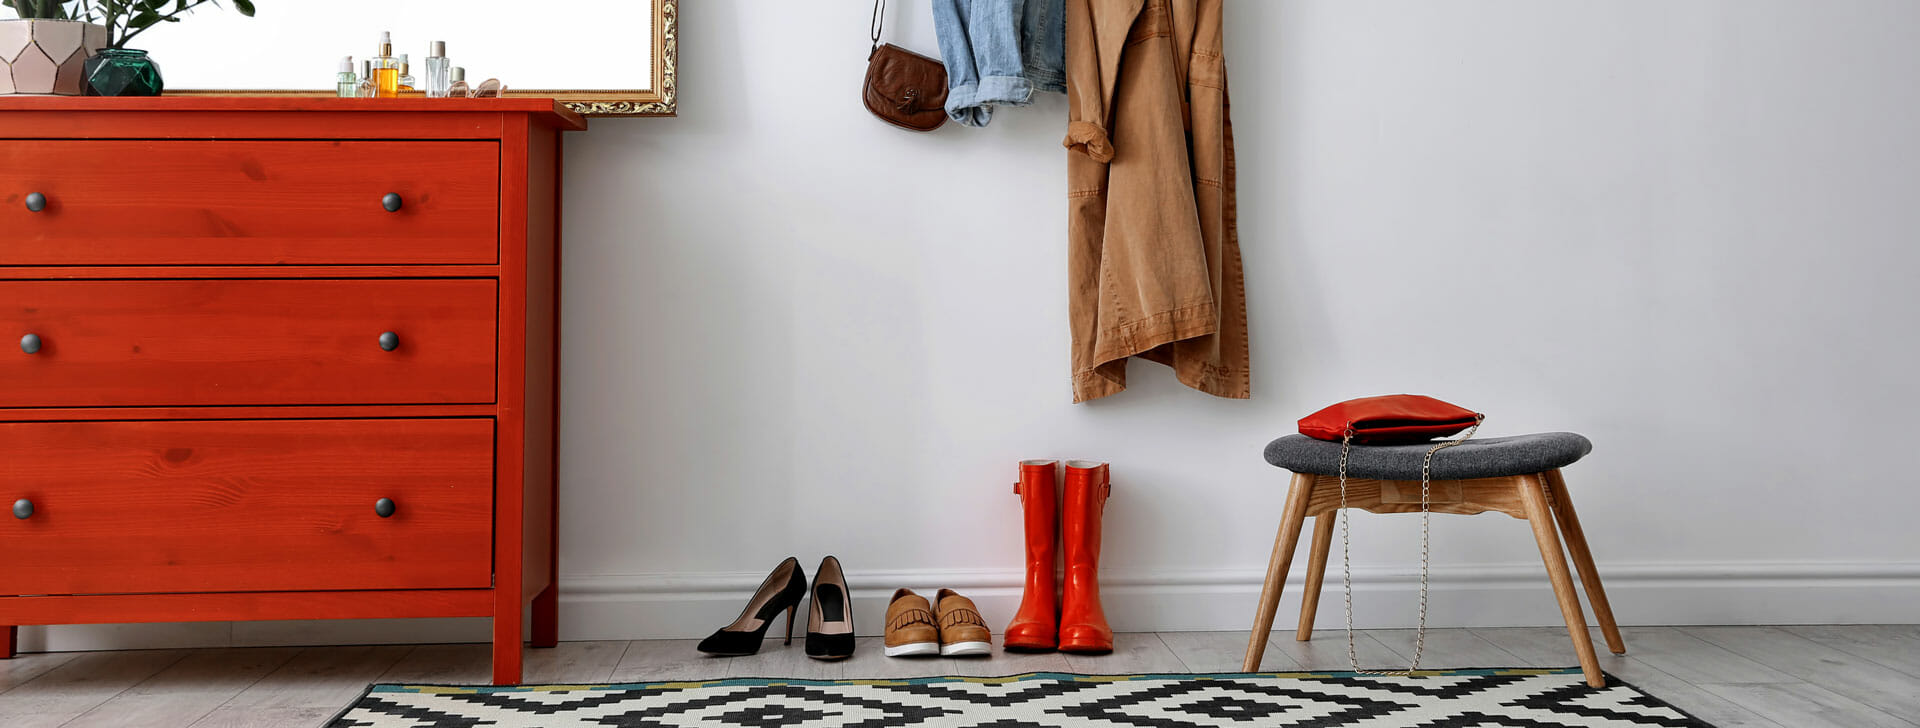 Room in a house with coats hanging on the wall and shoes below with a stool and dresser